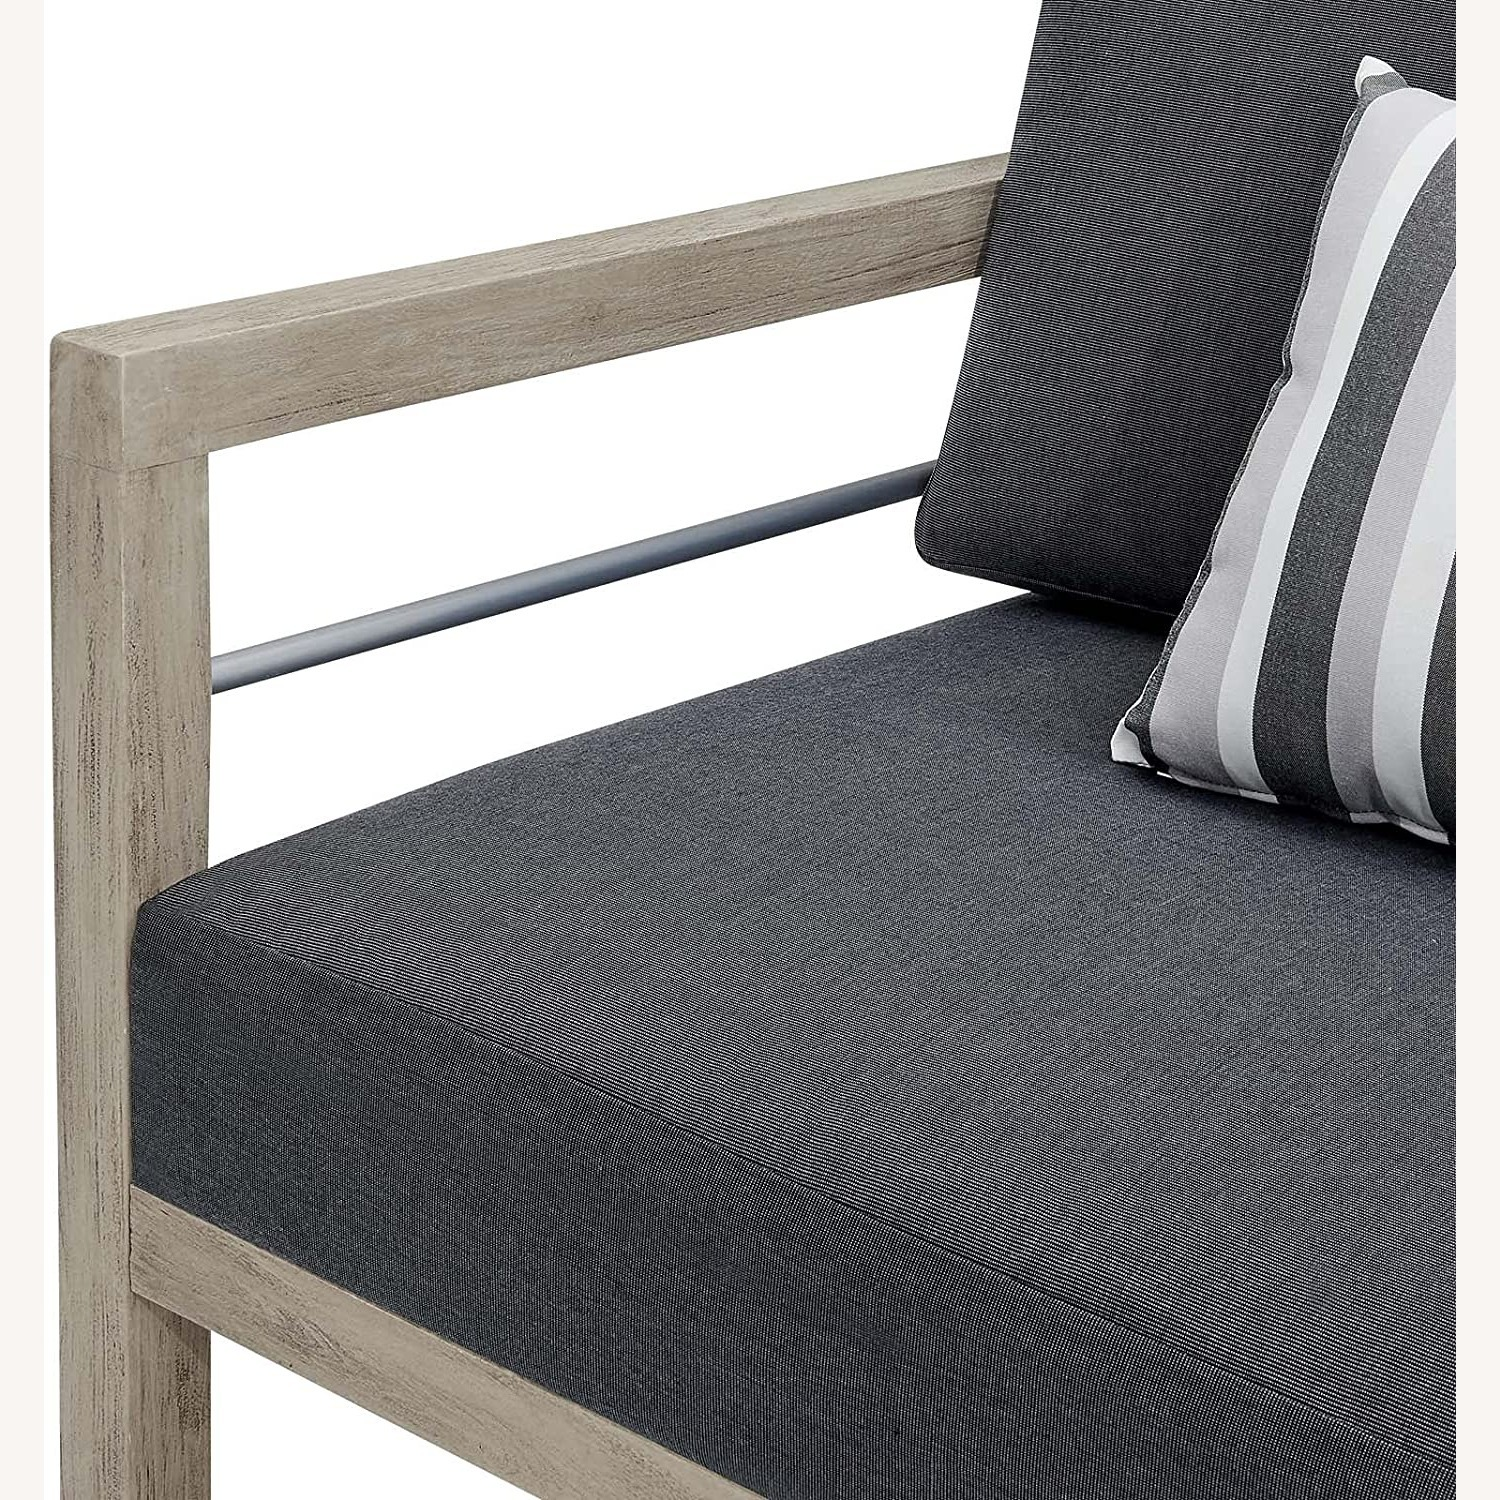 Outdoor Patio Set In Light Gray Wood Finish - image-8